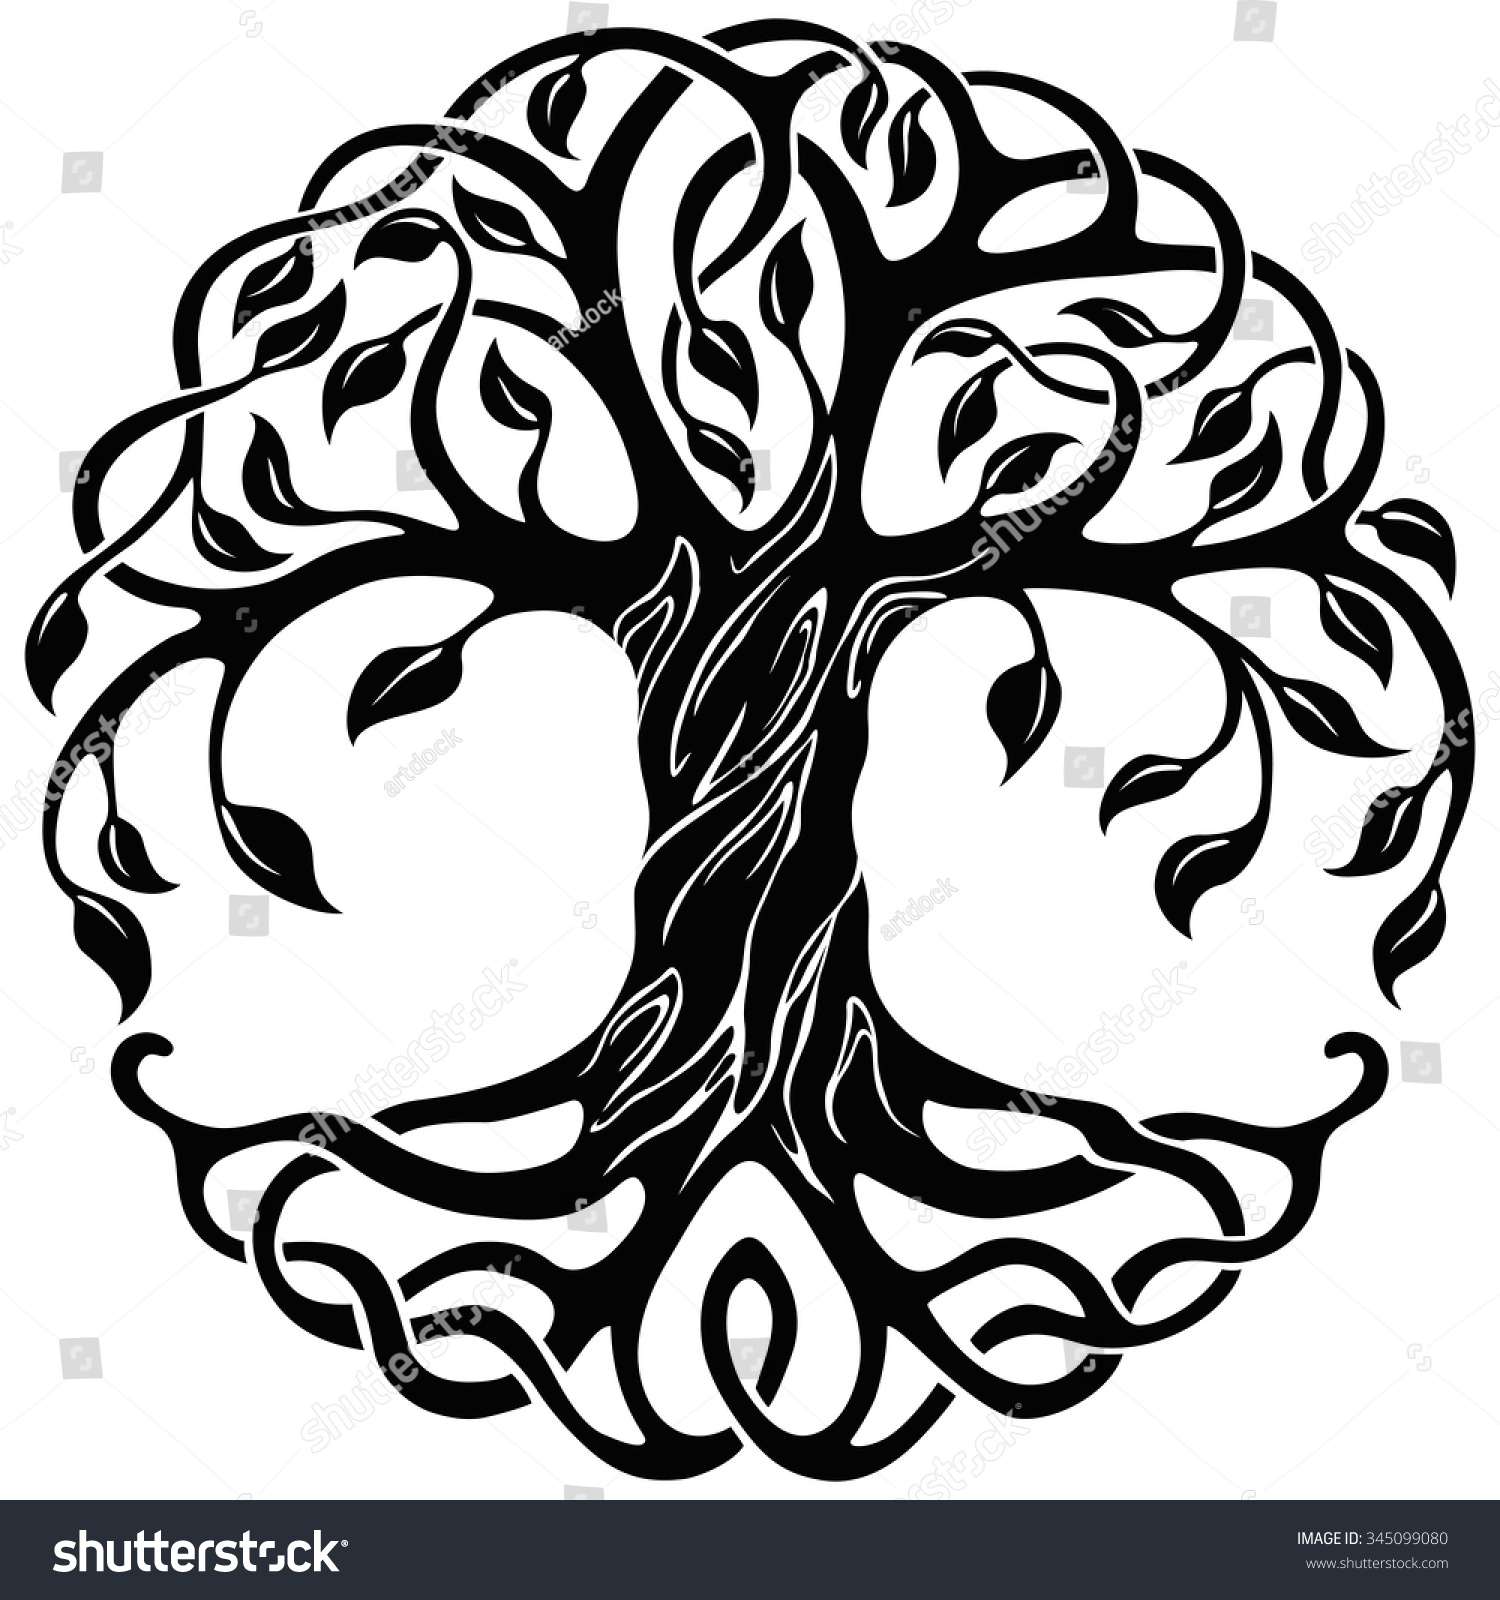 Gallery For gt Tree Of Life Outline